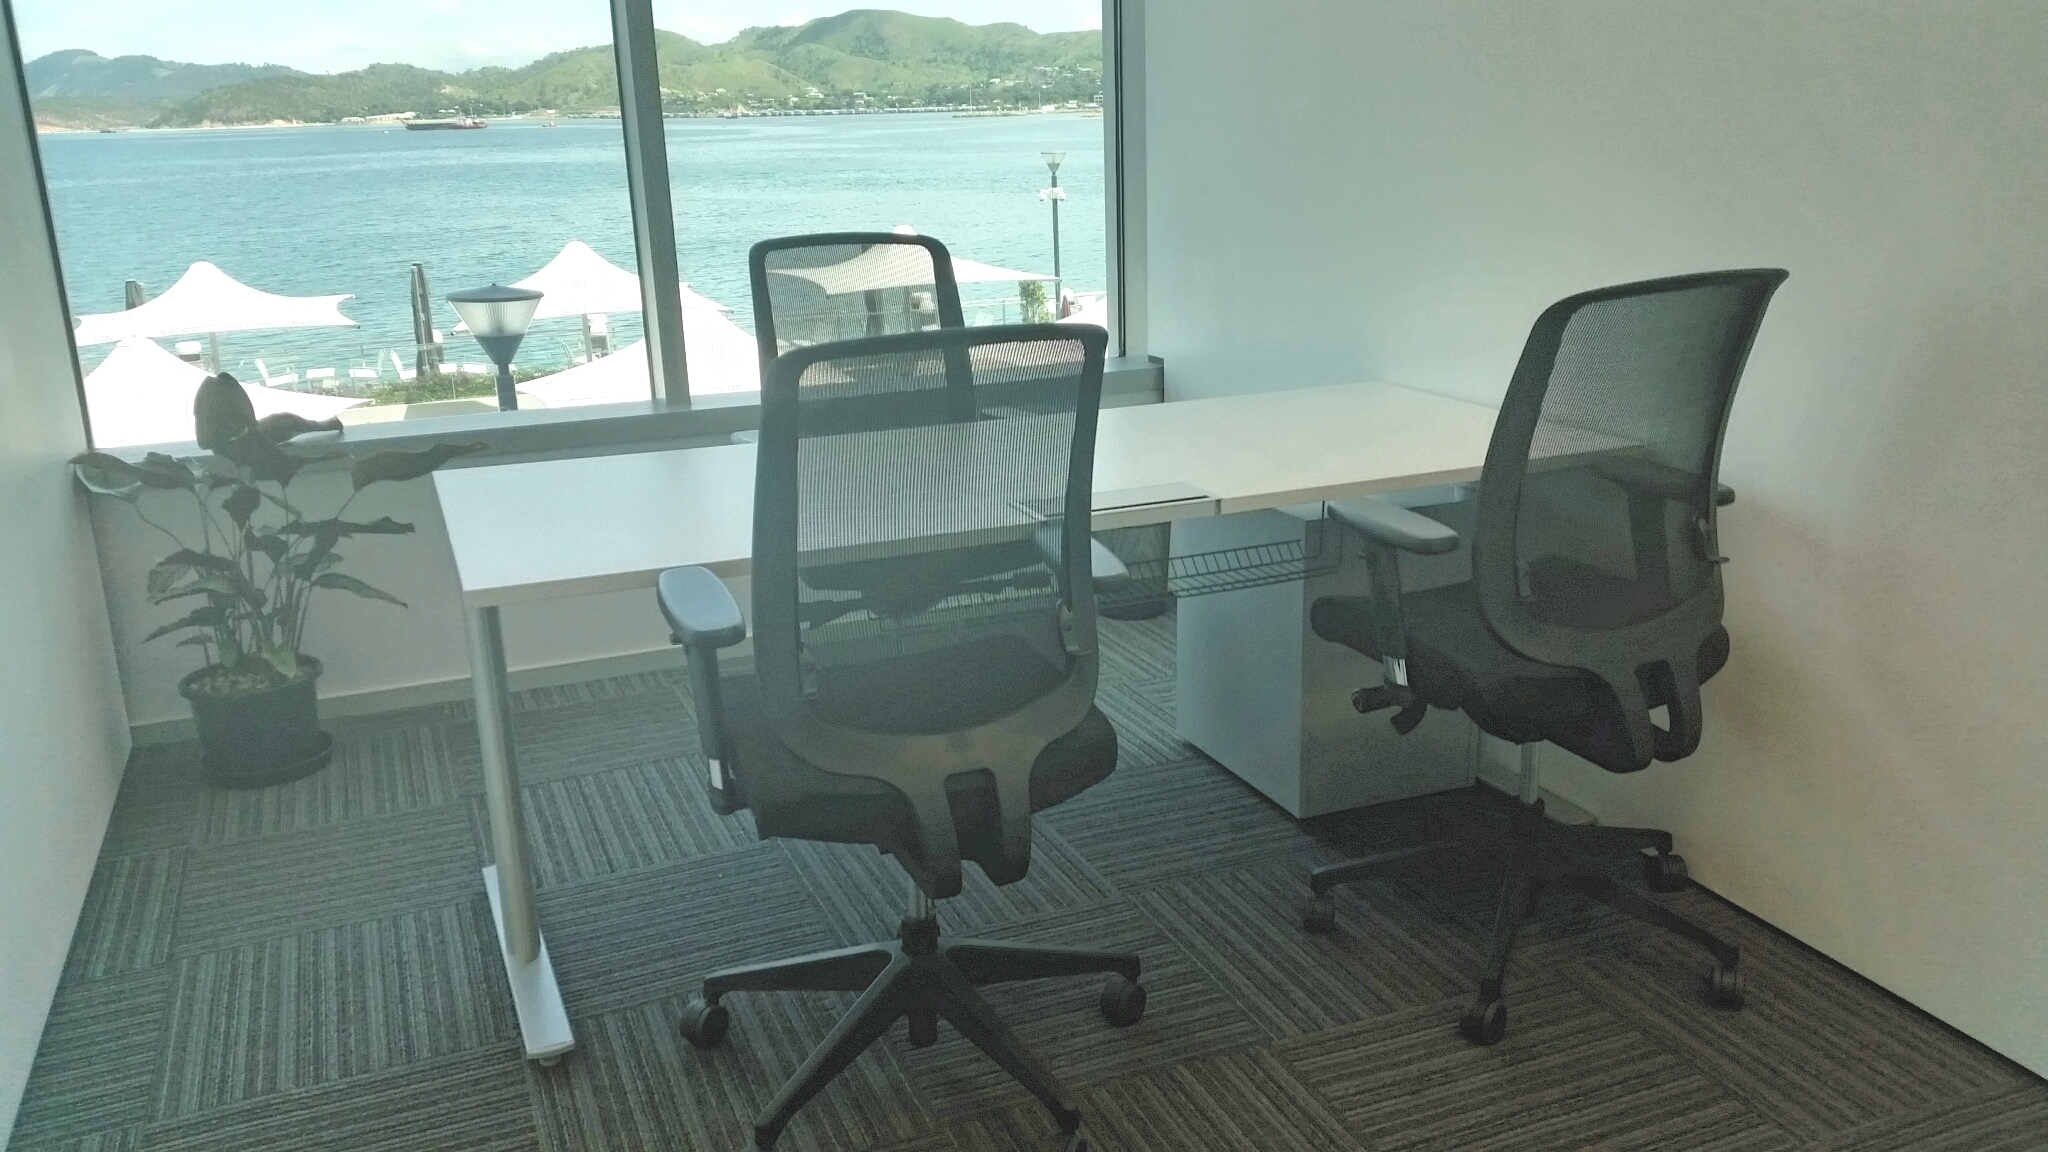 LEVEL 1,HARBOURSIDE WEST TOWER (1 PERSON EXECUTIVE)